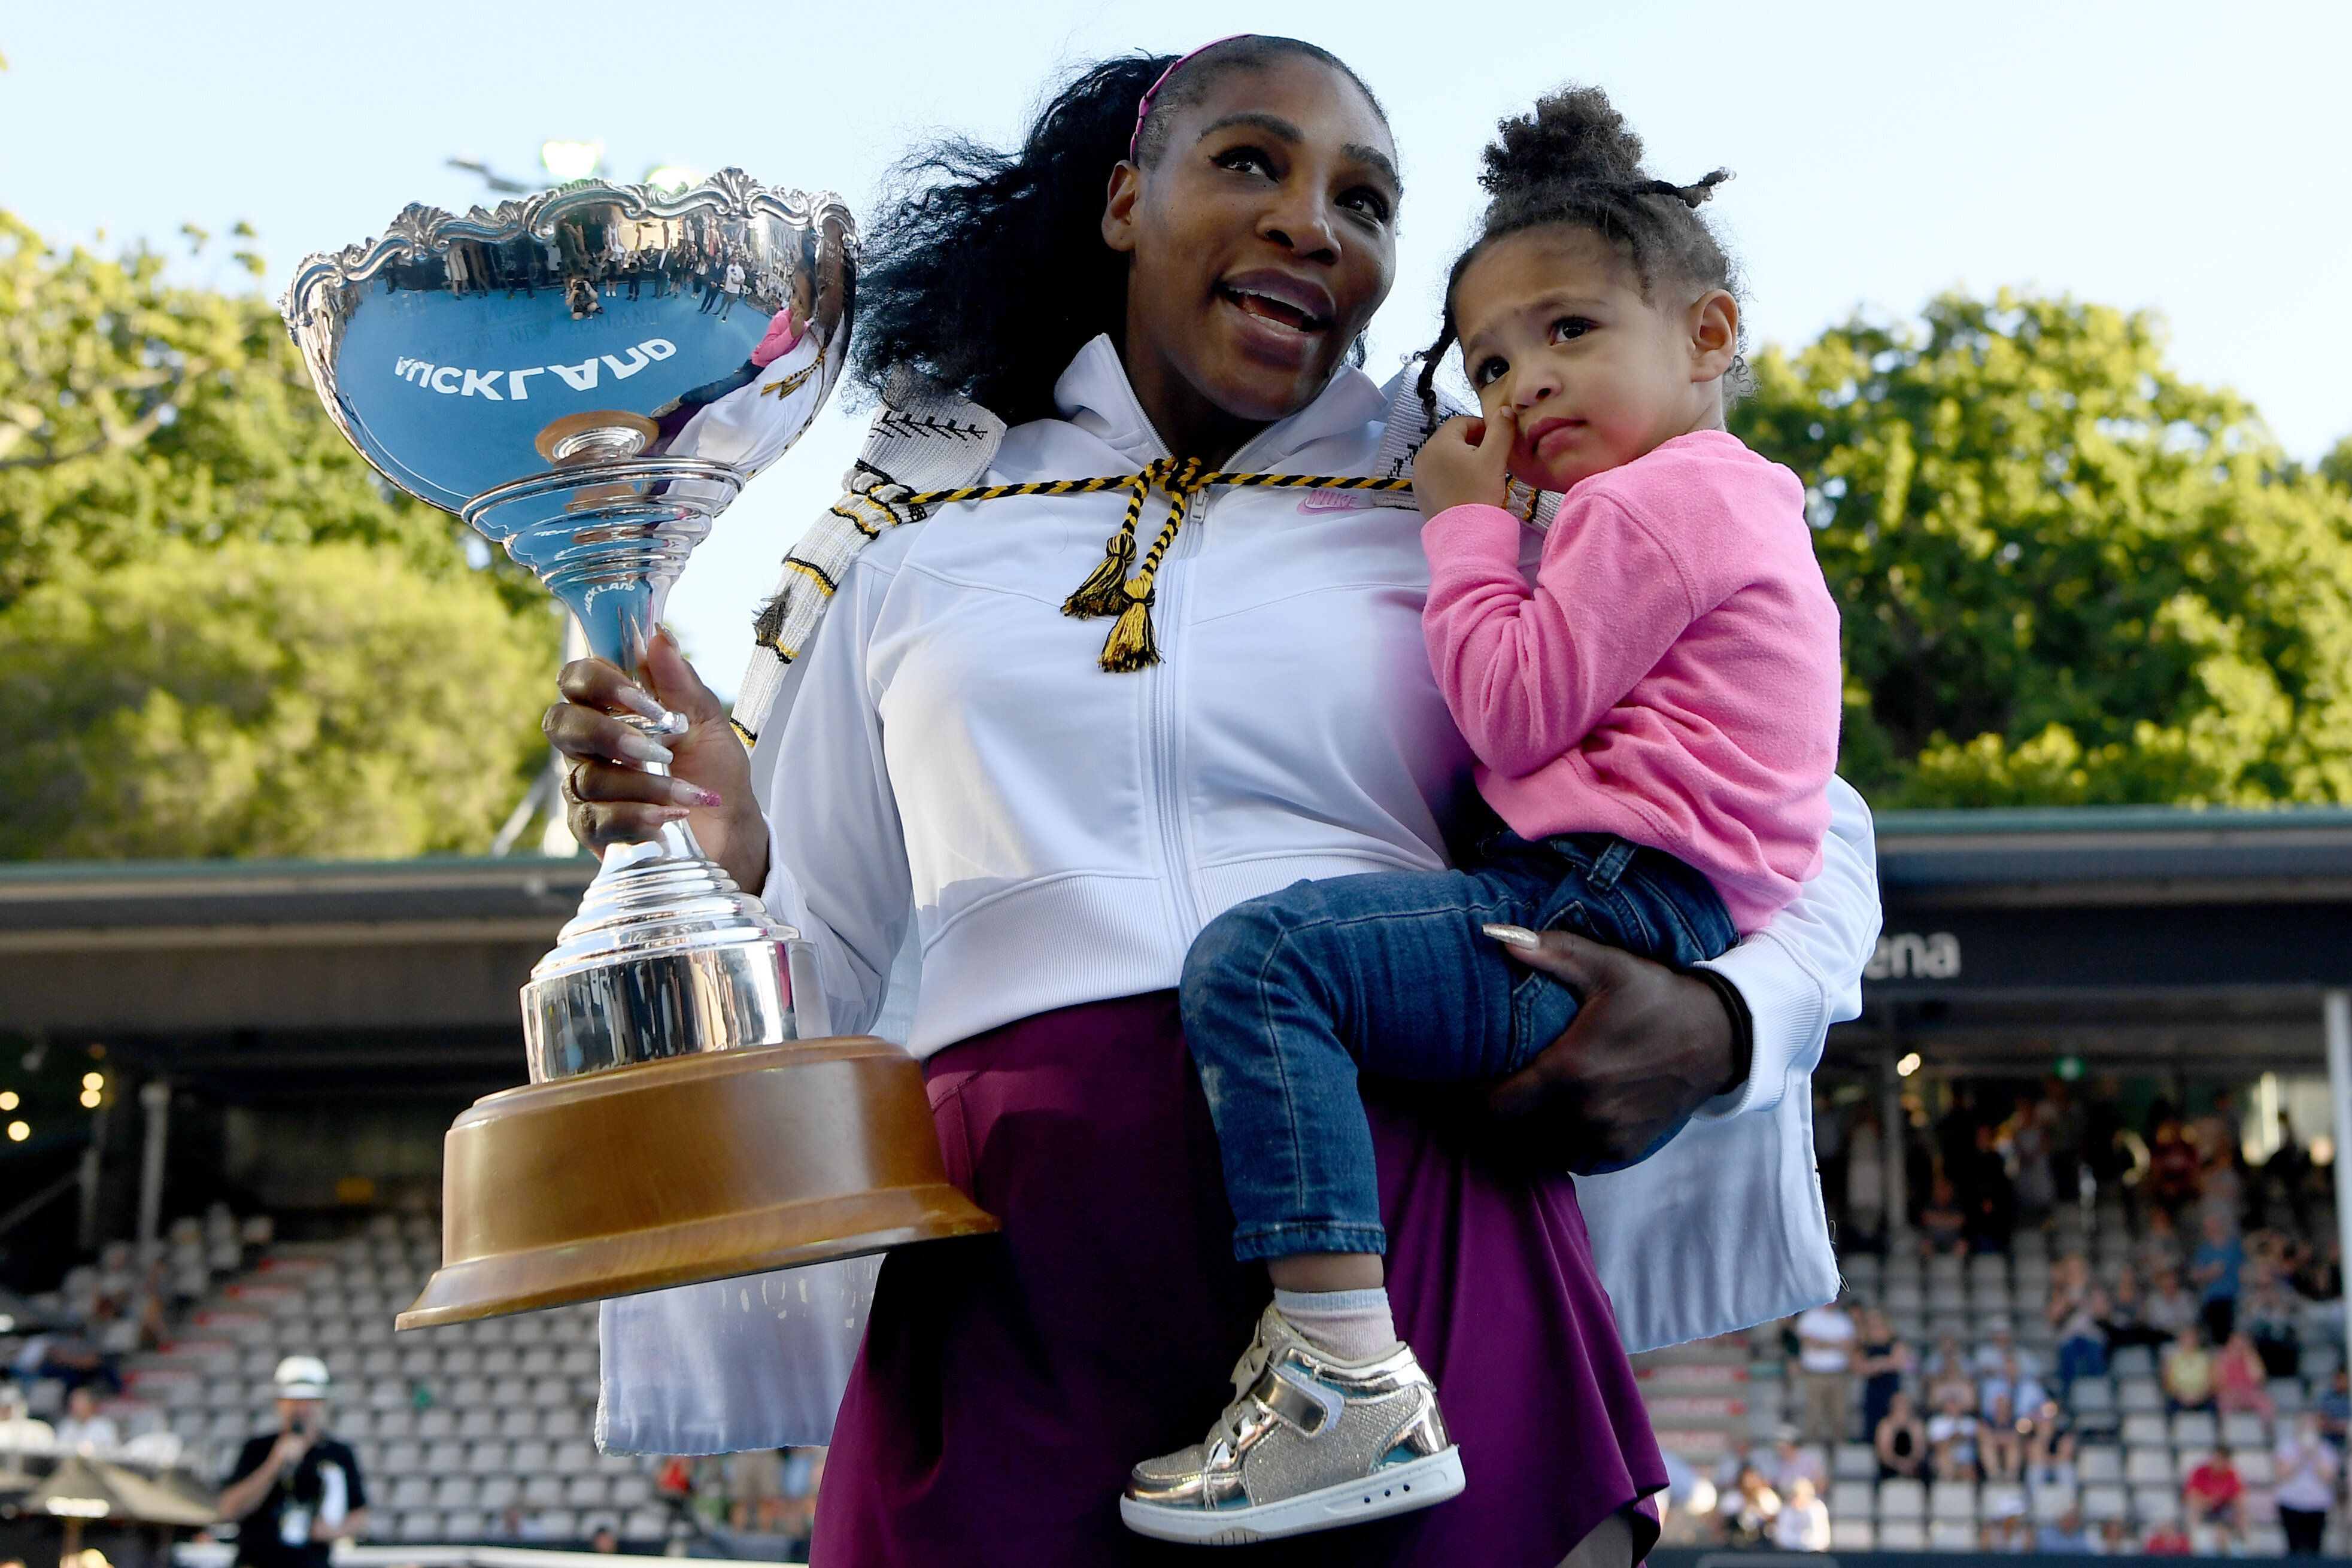 Serena Williams And Daughter Olympia Are Tennis Twins As They Hit Court Together